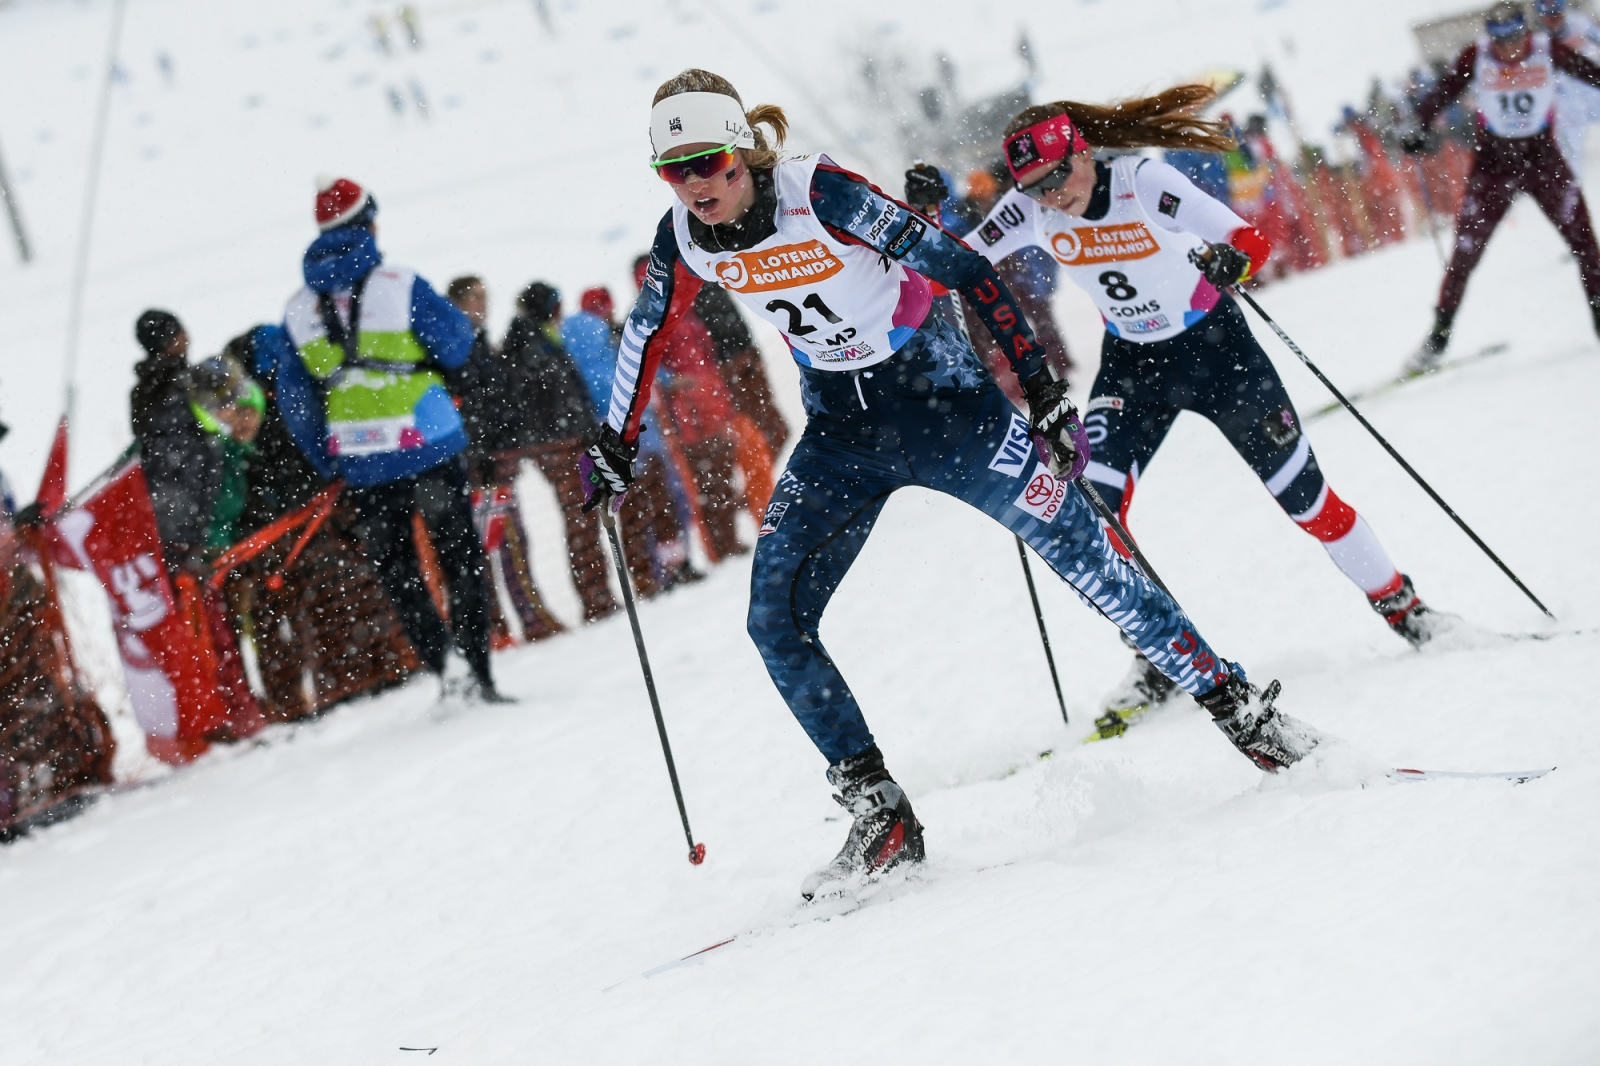 https://fasterskier.com/wp-content/blogs.dir/1/files/2018/02/1517483013-JWSC2018_Skiathlon_Juniors_Ladies_01.02.2018_00335.jpg